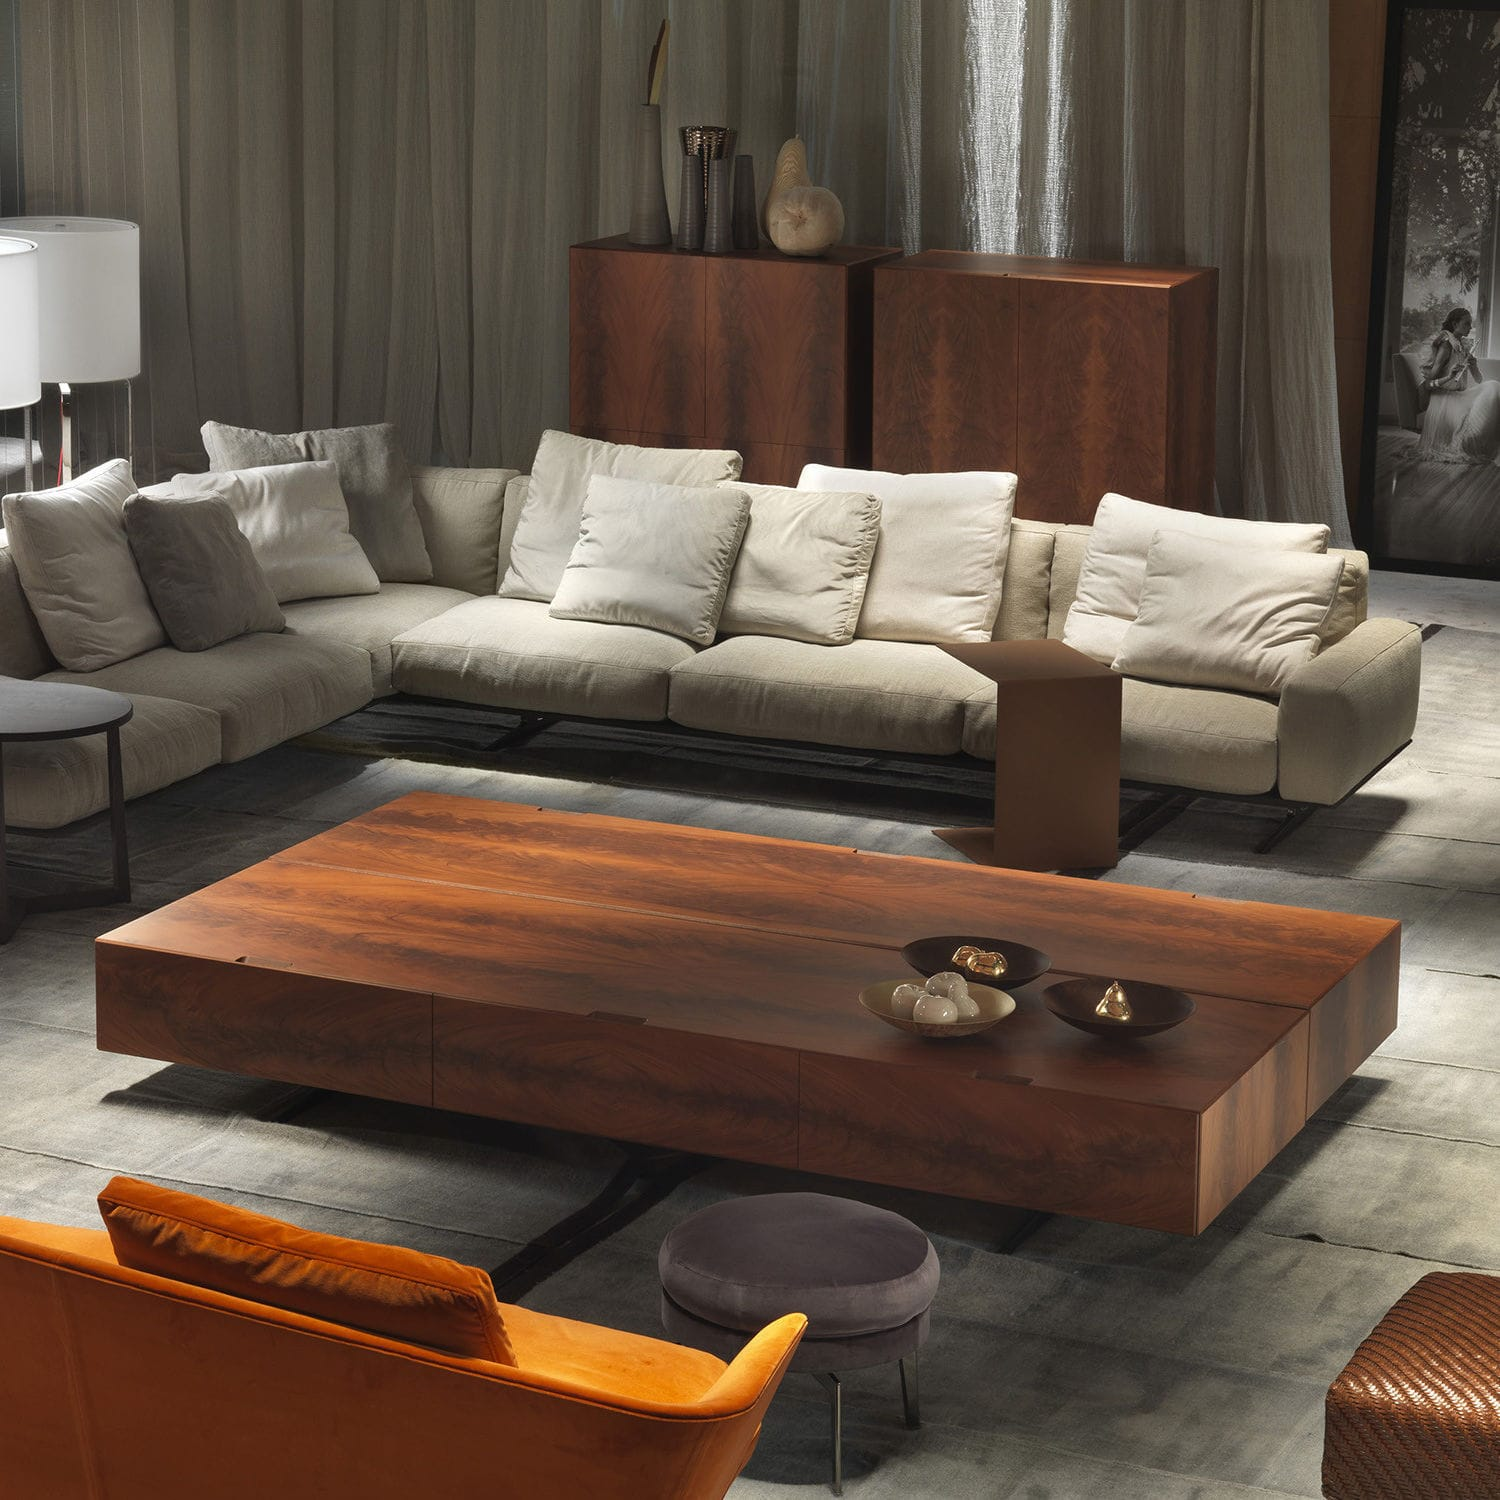 Contemporary coffee table wooden rectangular with drawer